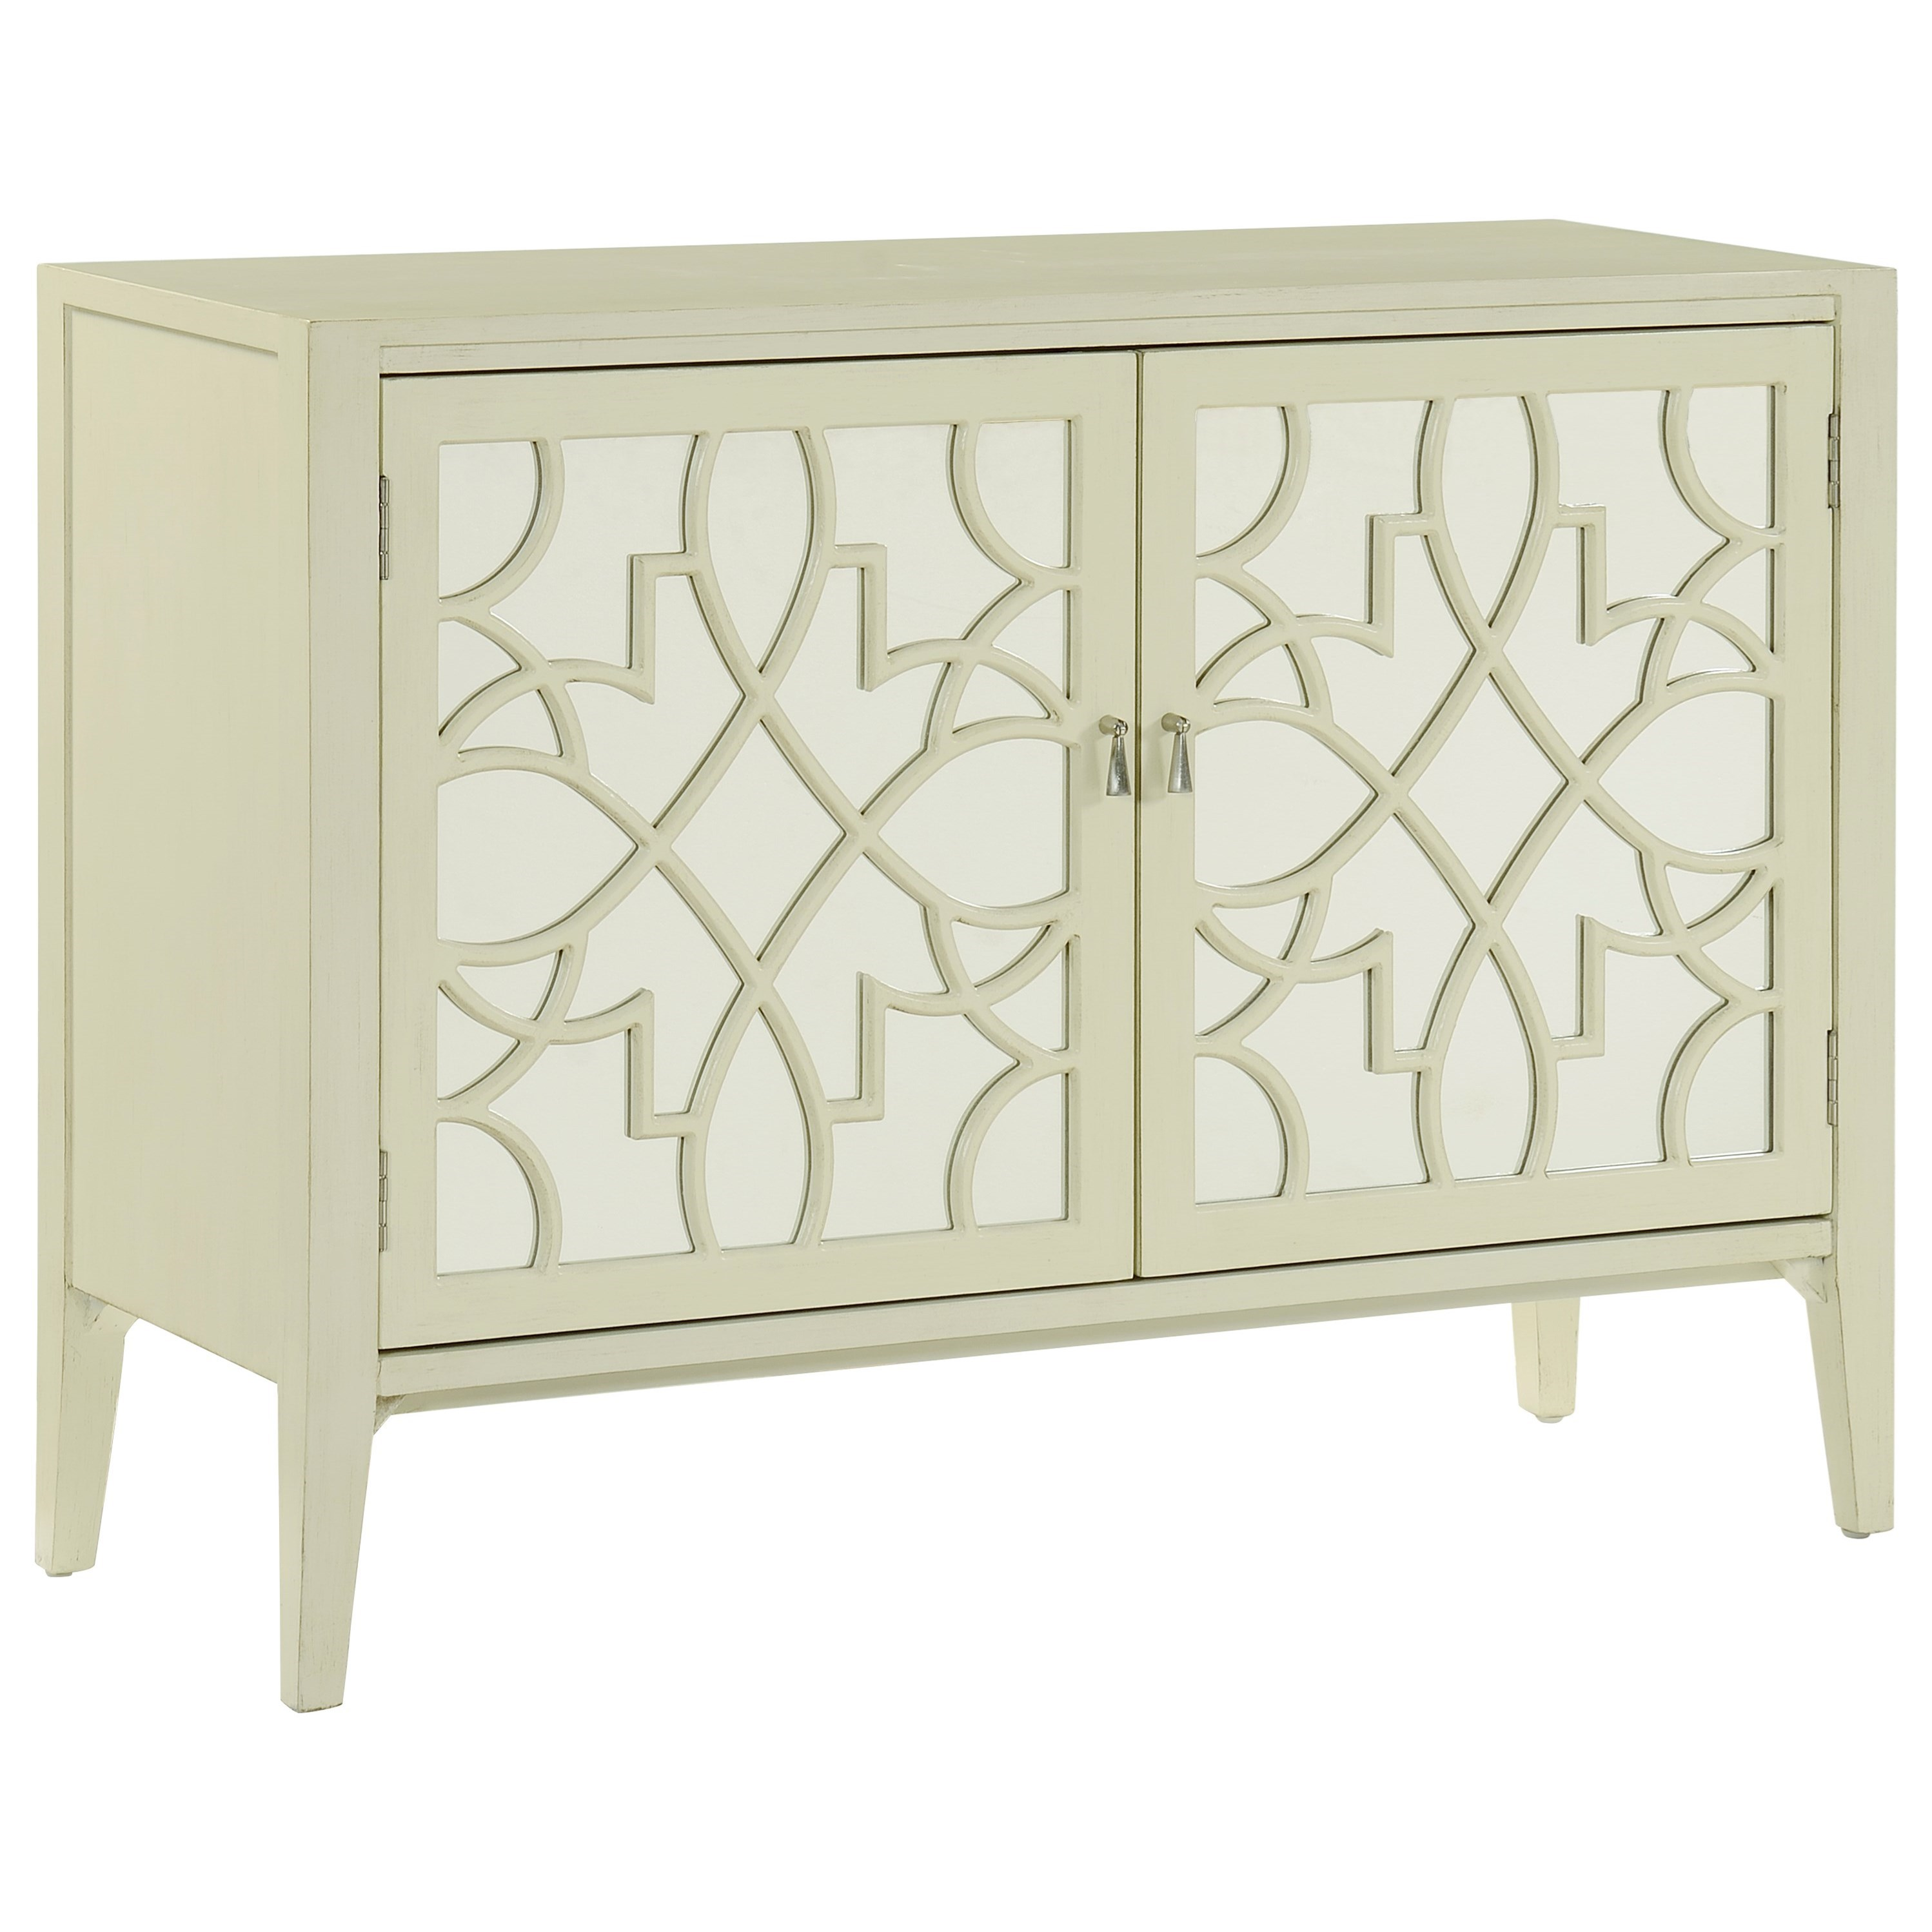 Coast to Coast Imports Coast to Coast Accents Two Door Cabinet - Item Number: 78671